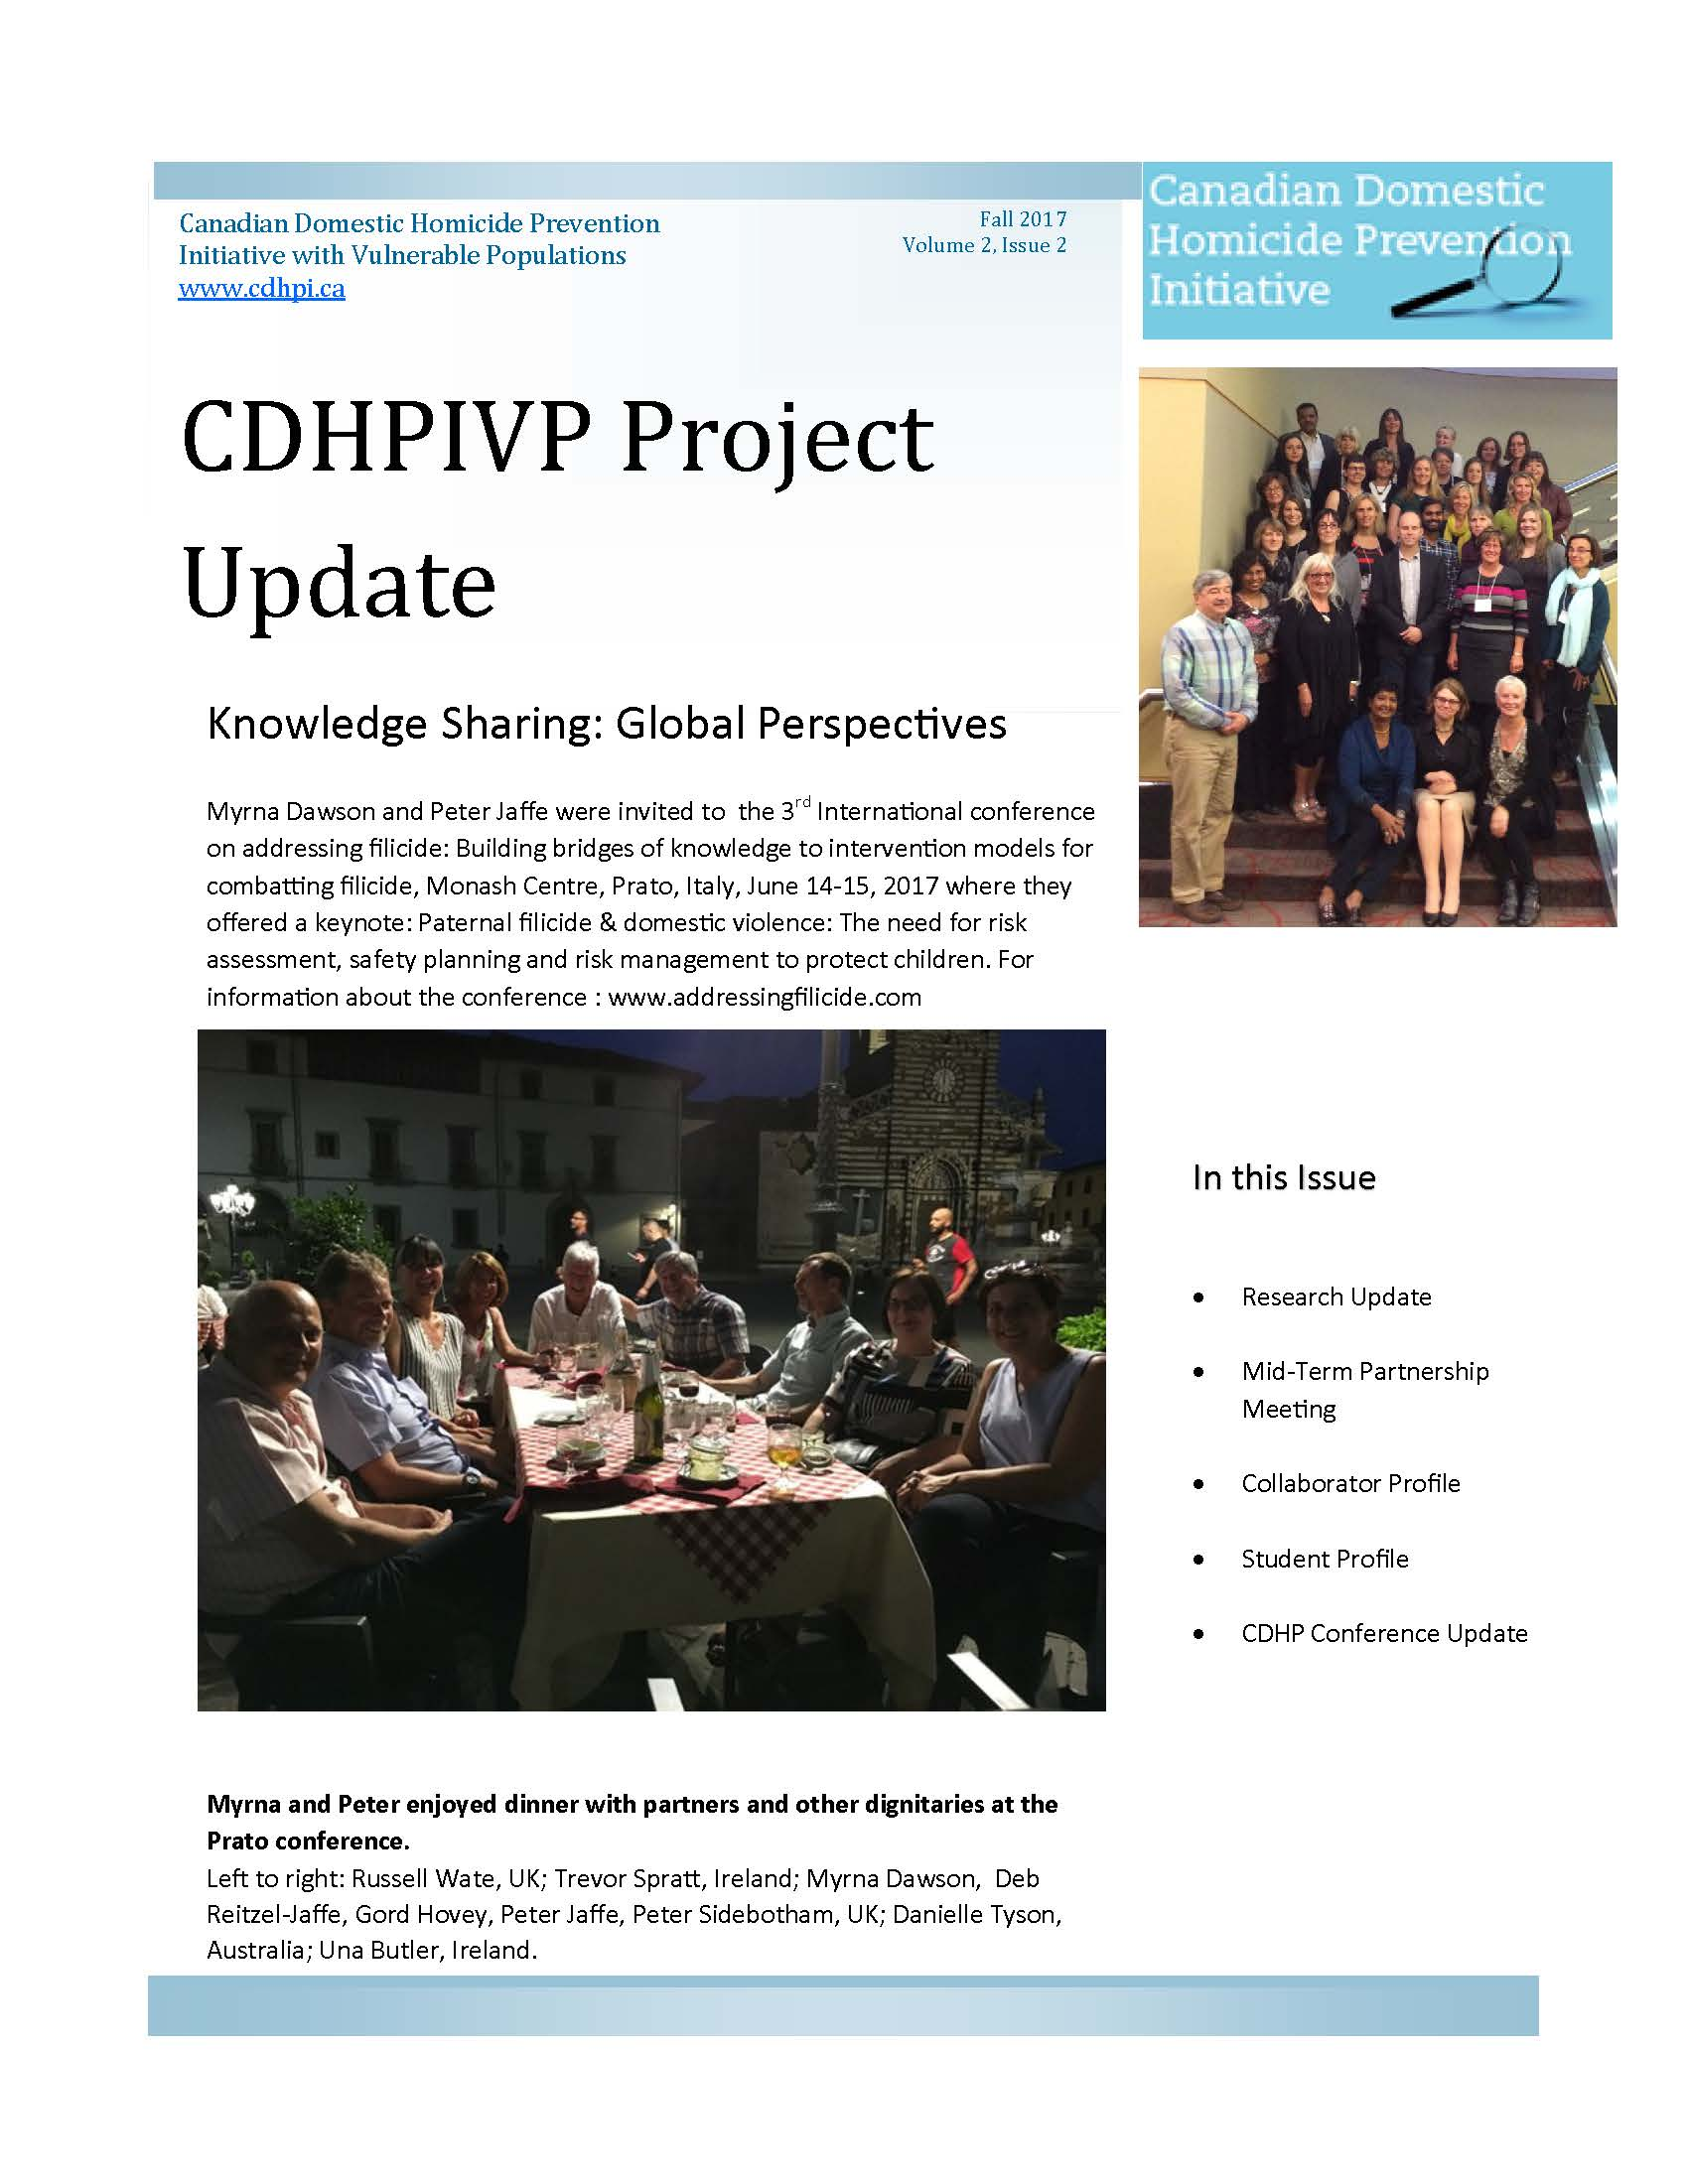 CDHPIVP Project Update: Volume 2, Newsletter 2 cover page